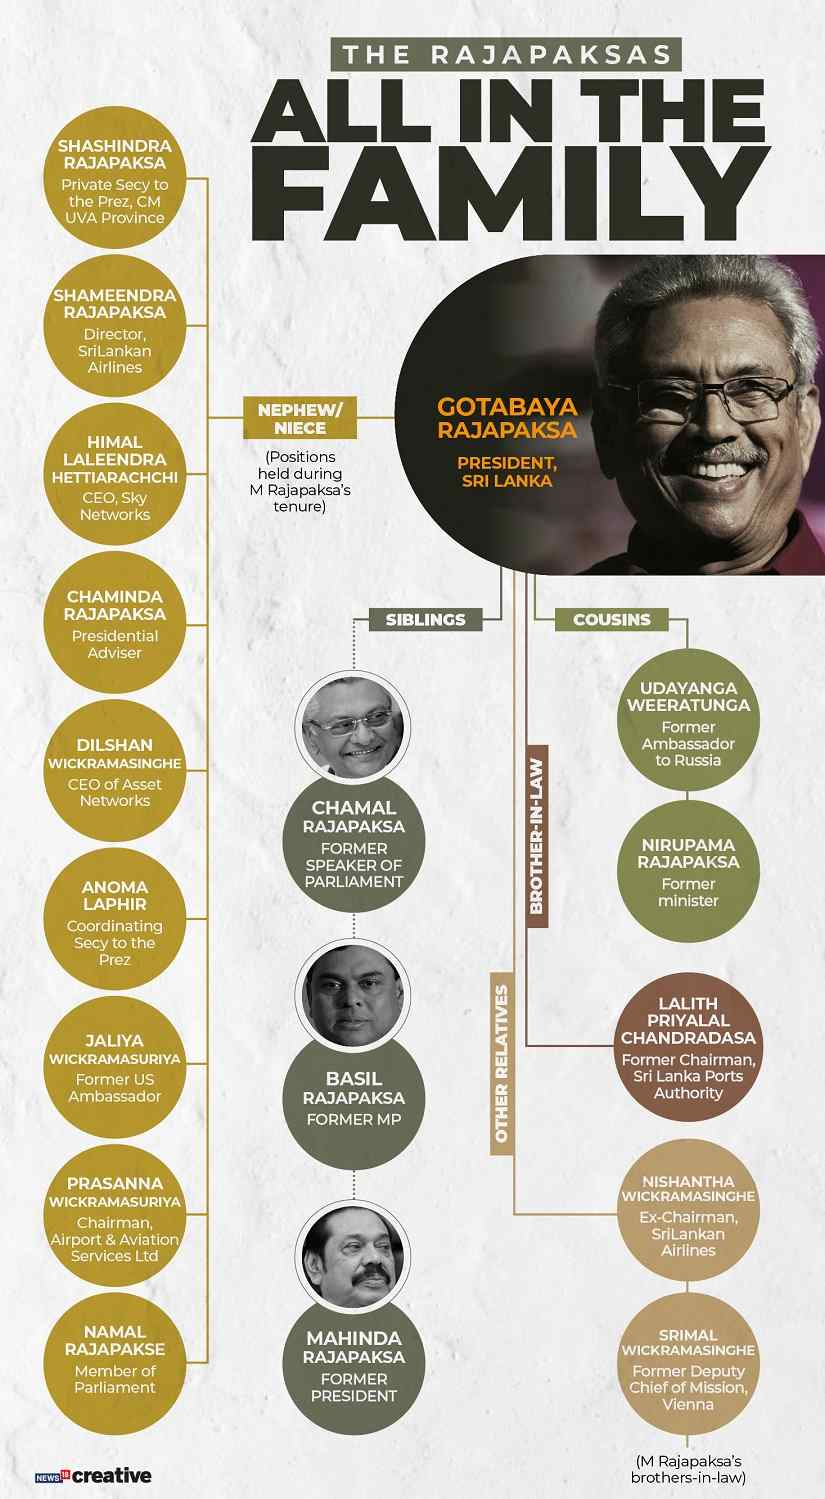 Gotabaya Rajapaksa storms to victory in Sri Lankas presidential polls Controversial war hero played central role in ending LTTE conflict